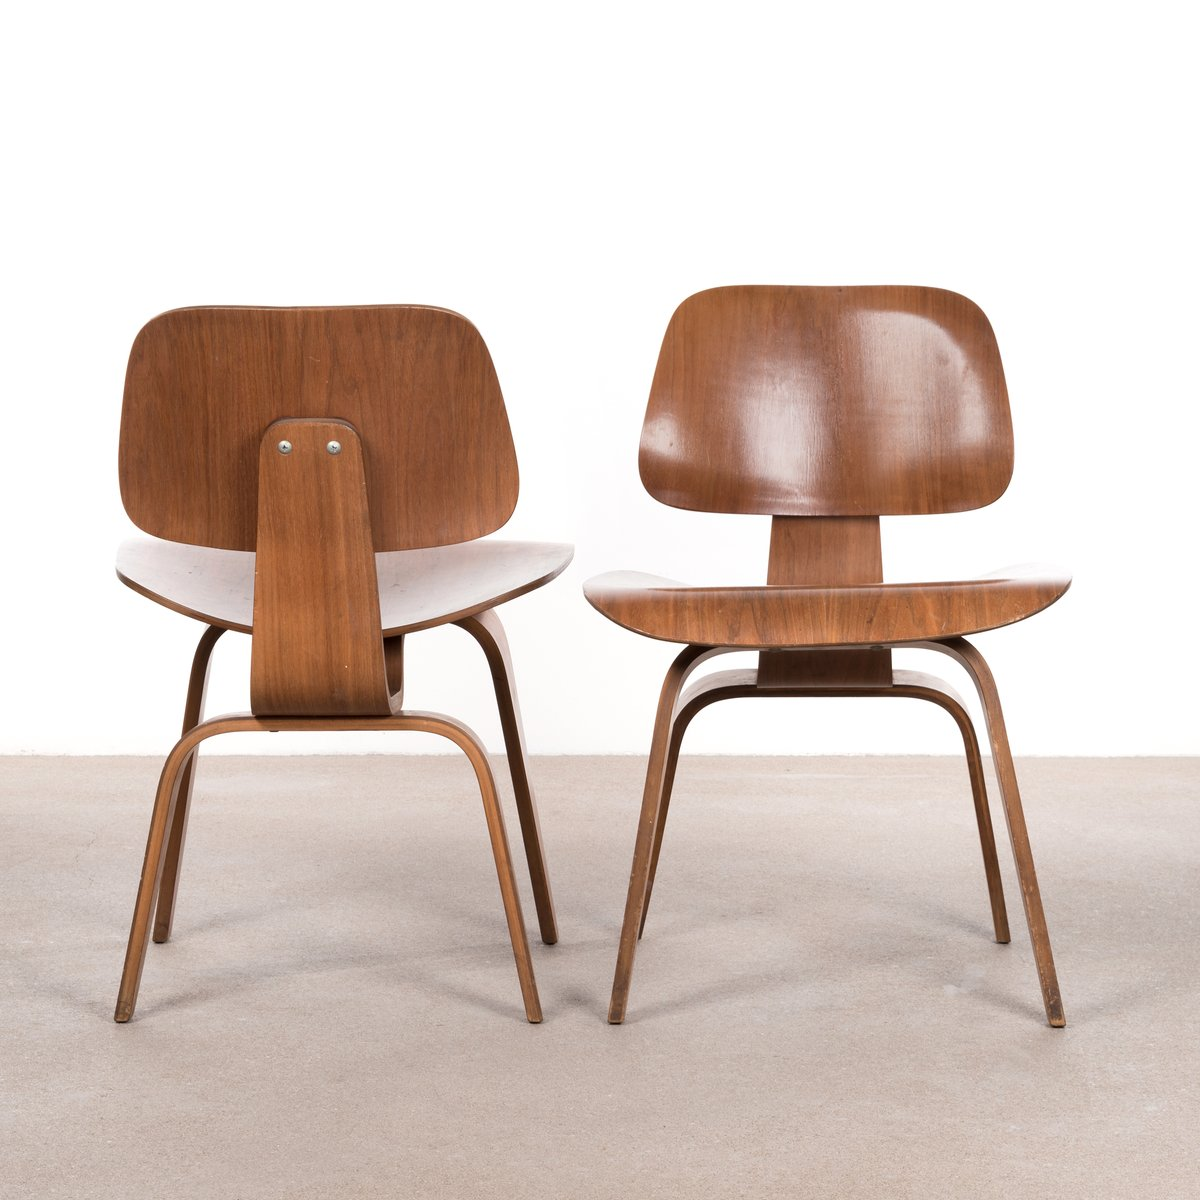 Dcw walnut plywood dining chair by charles ray eames for for Eames chair deutschland